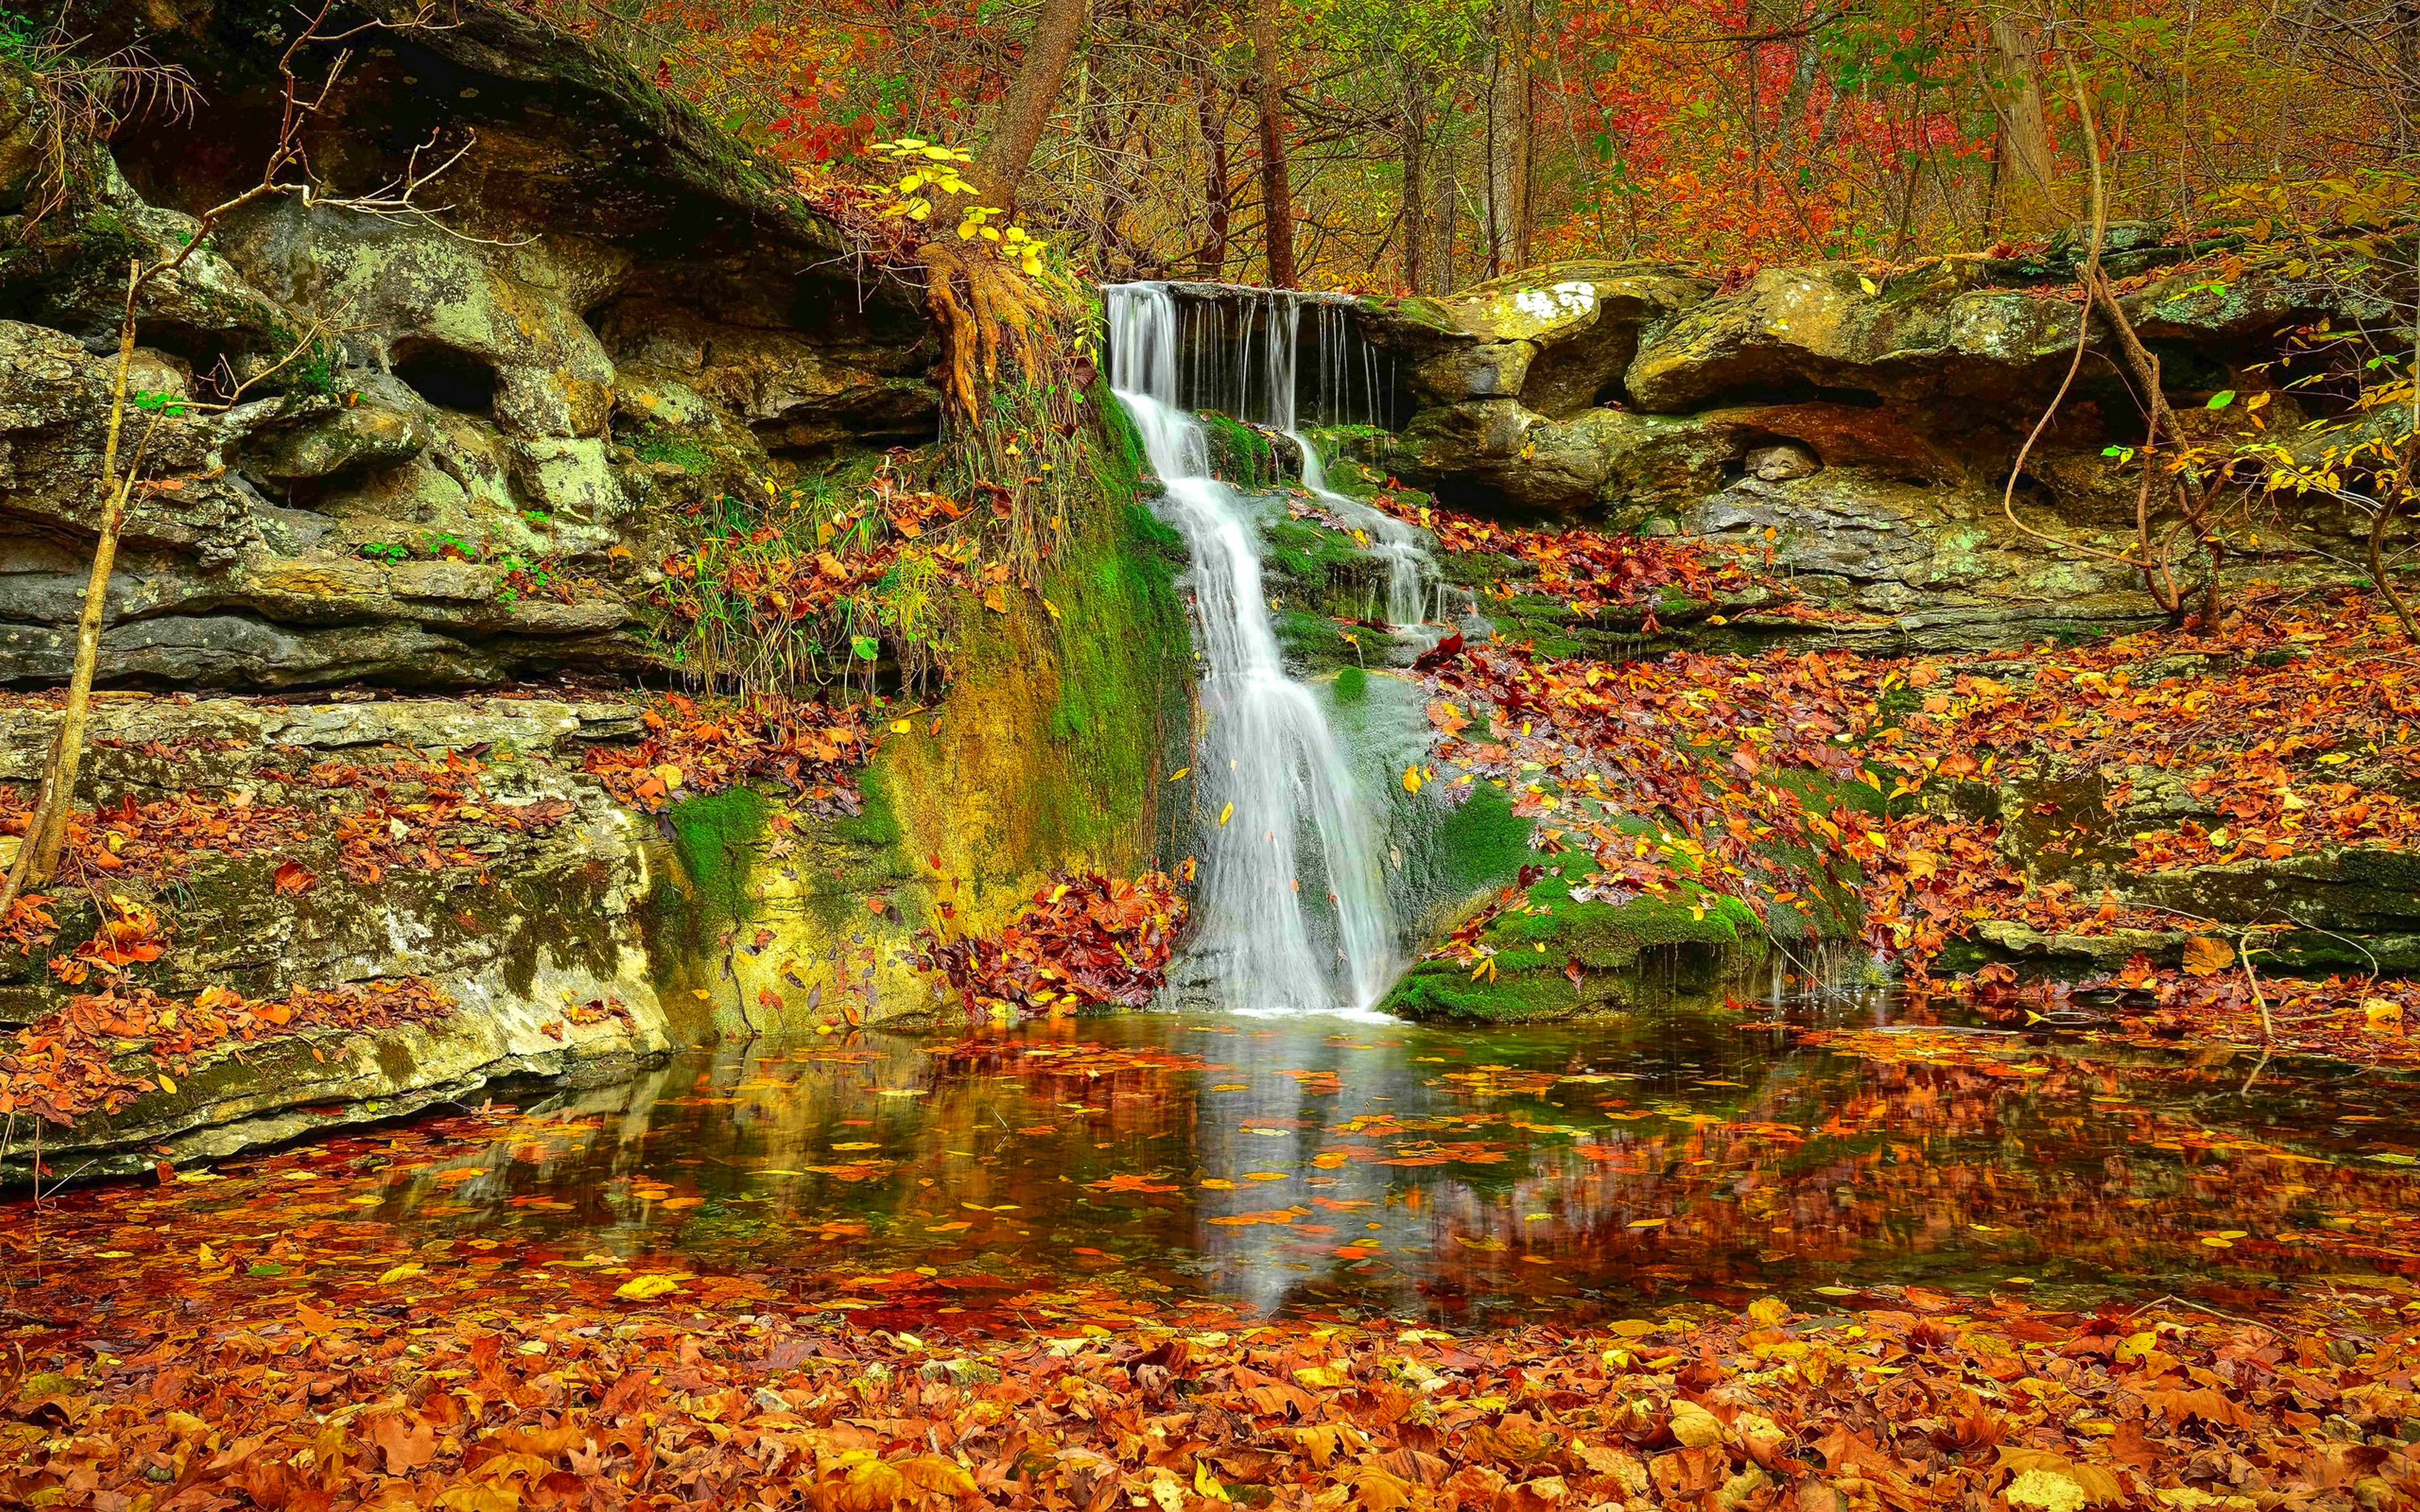 Waterfall autumn lovely stream fall nature leaves beautiful rocks serenity forest colorful - 5120x3200 resolution ...